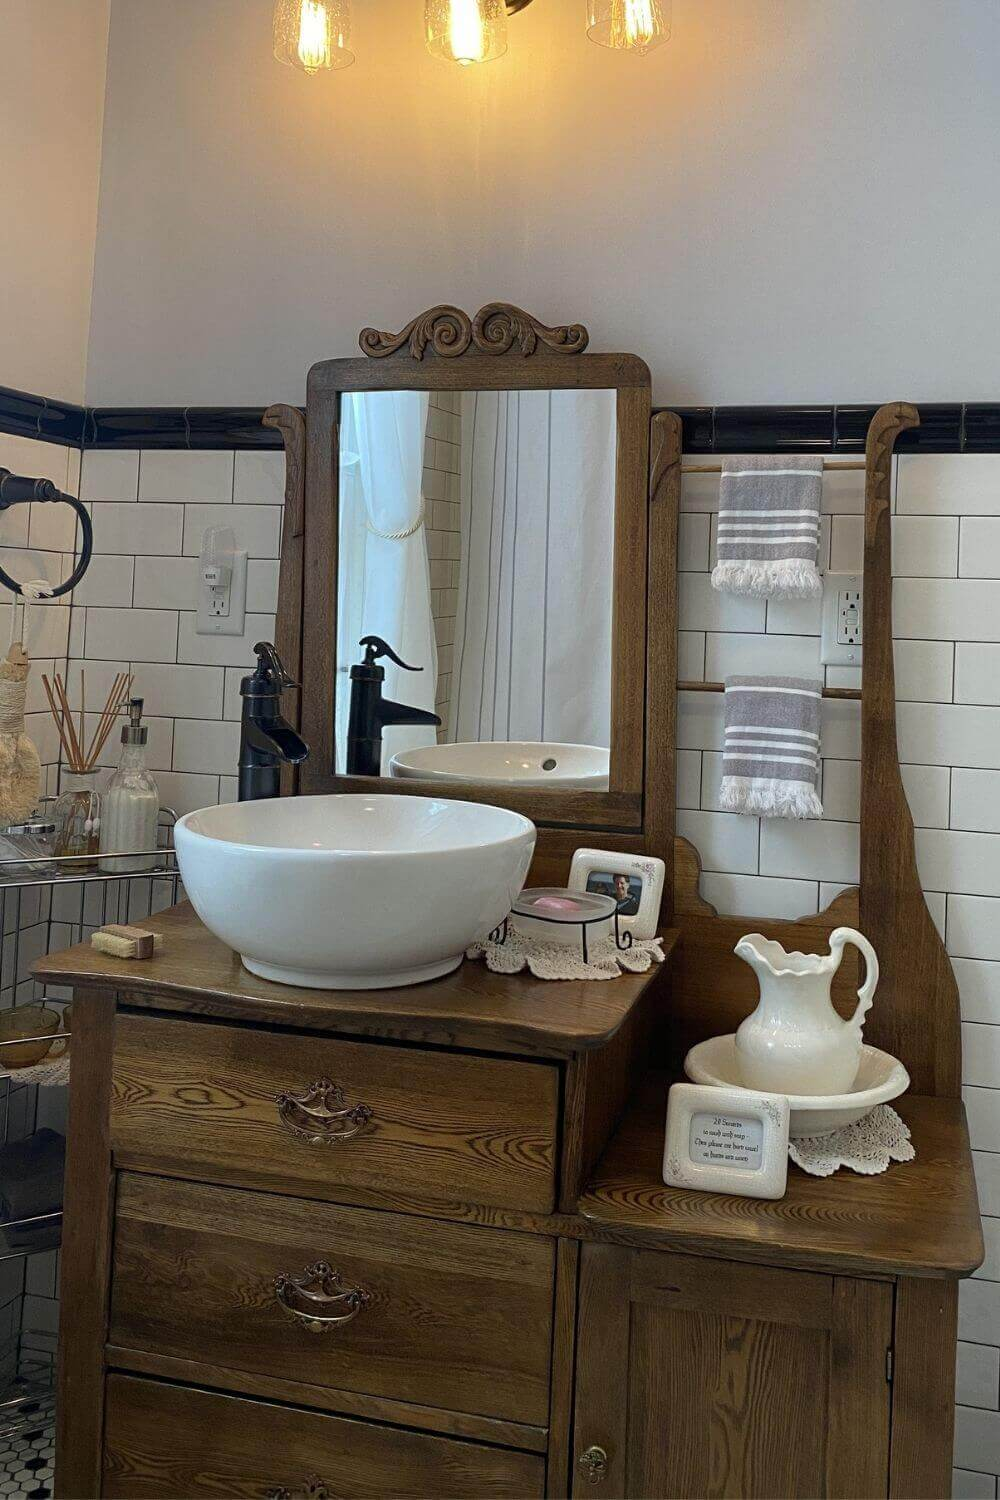 Antique sink vanity with mirror, pitcher and bowl